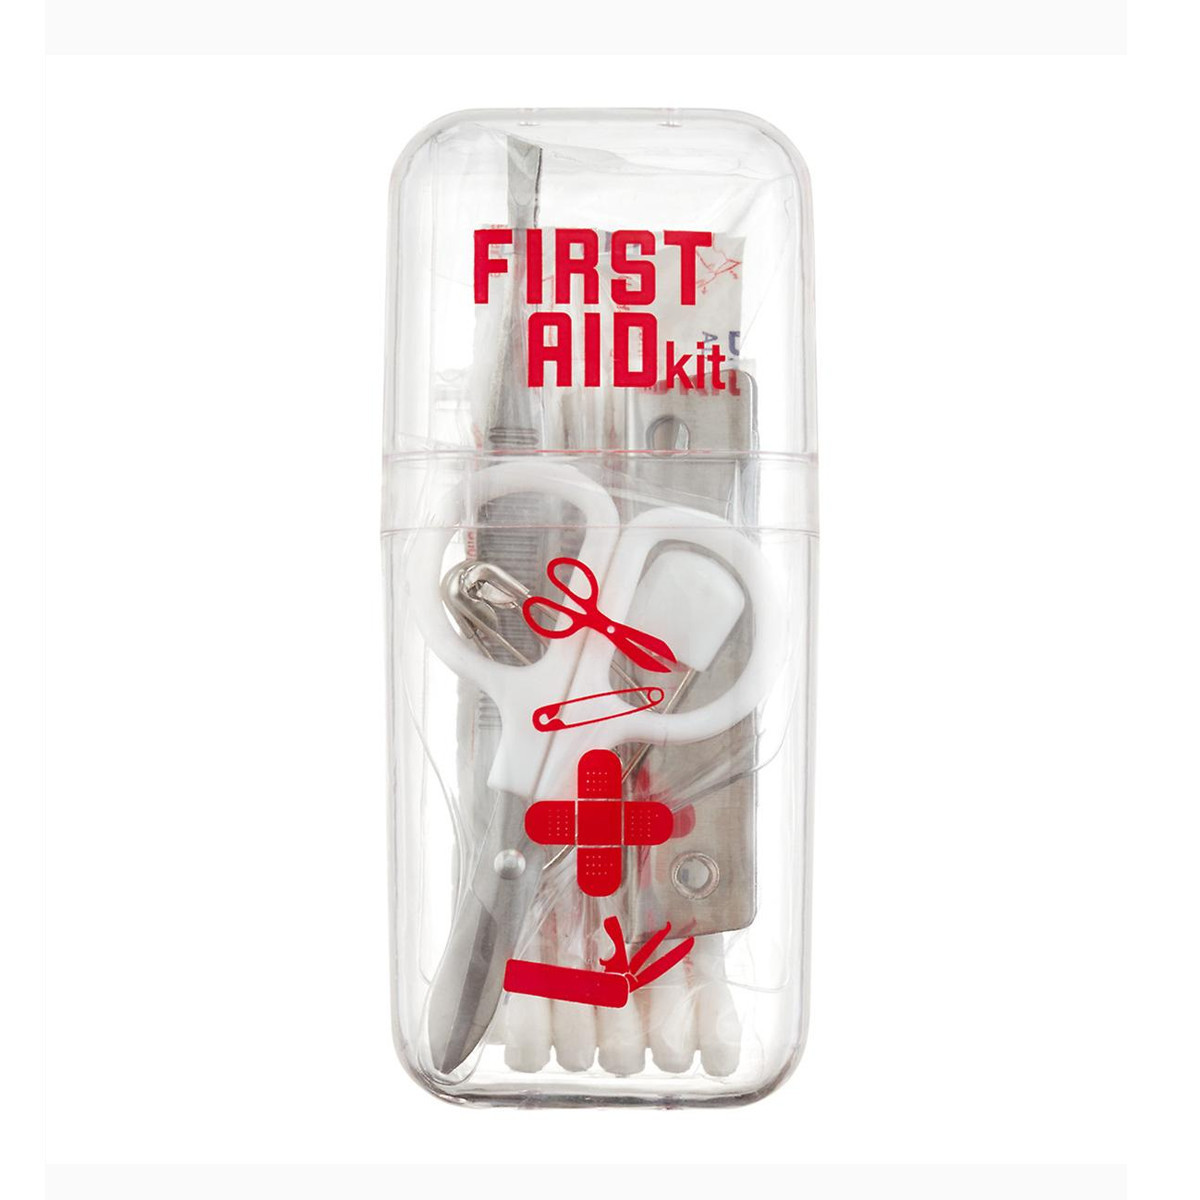 Palm-size first aid kit with scissors, bandages, etc. photo